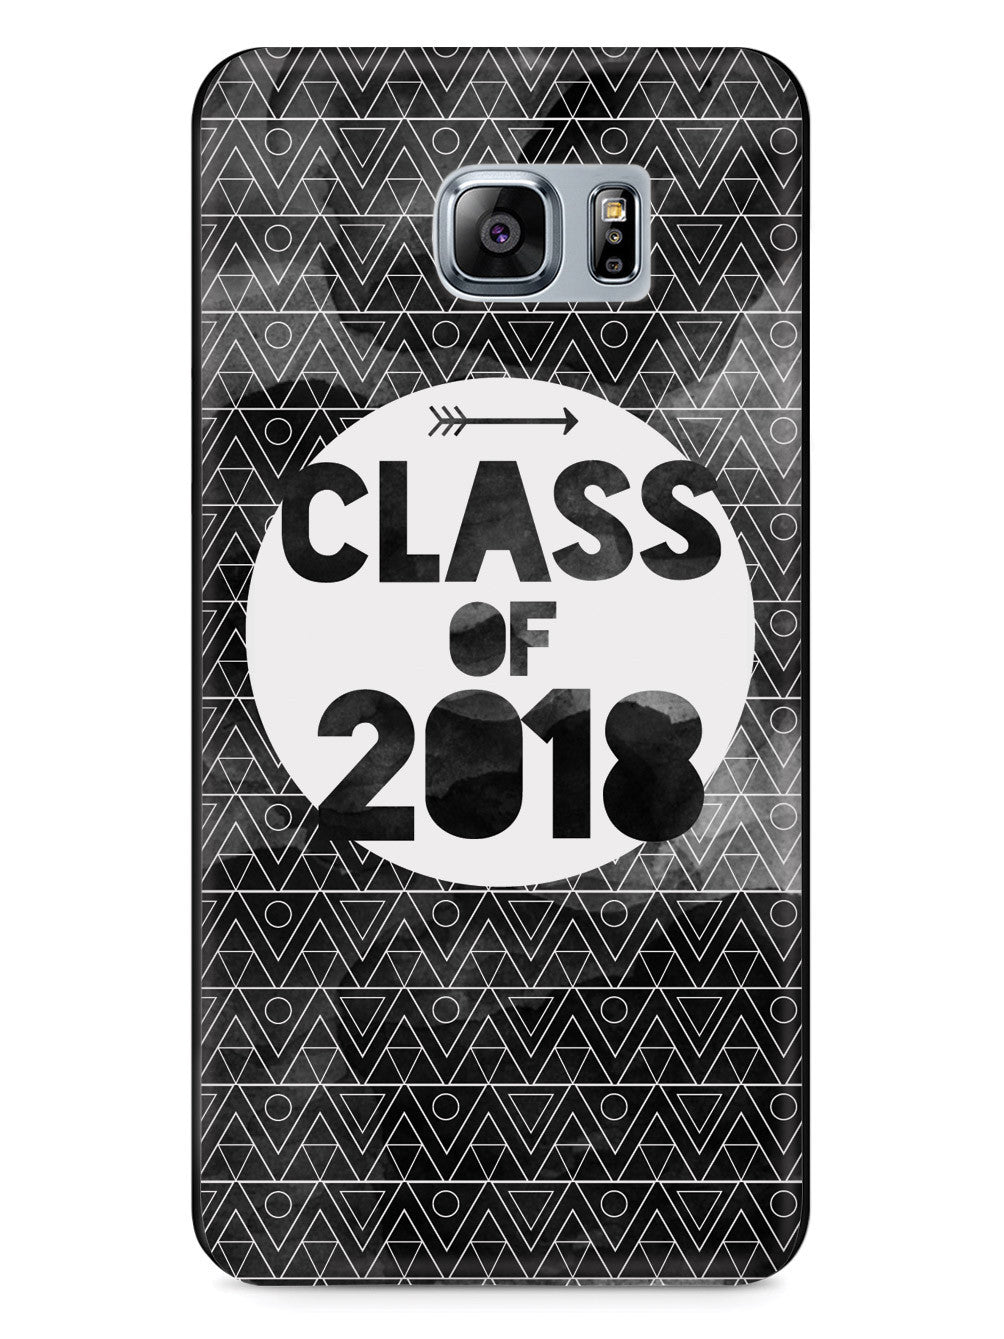 Class of 2018 - Black Watercolor Case